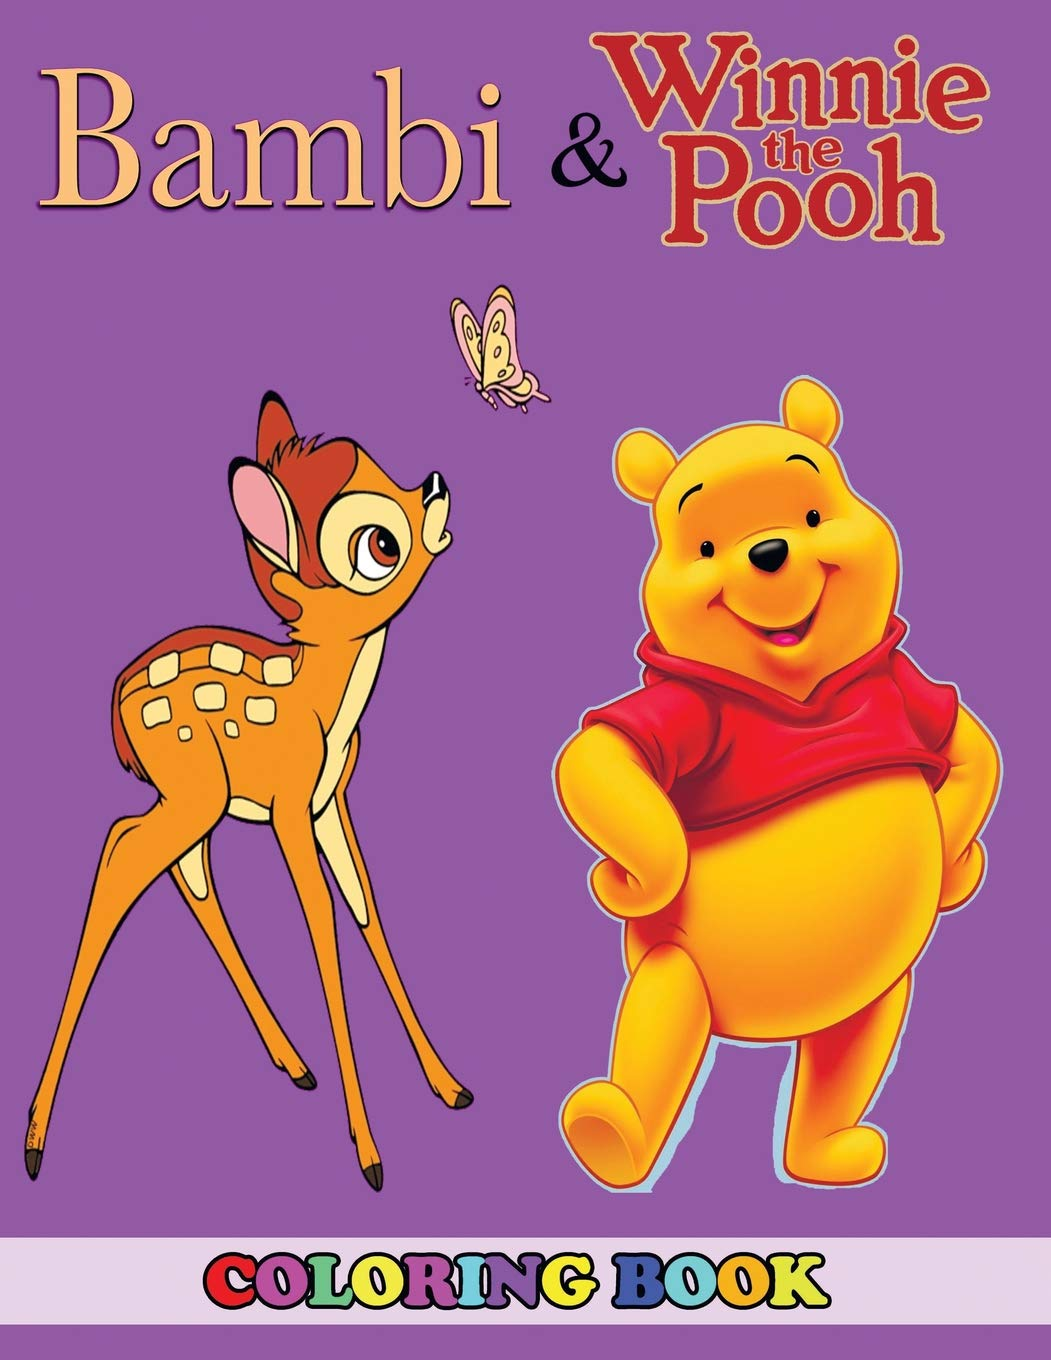 Amazon.com: Bambi and Winnie the Pooh Coloring Book: 2 in 1 Coloring ...